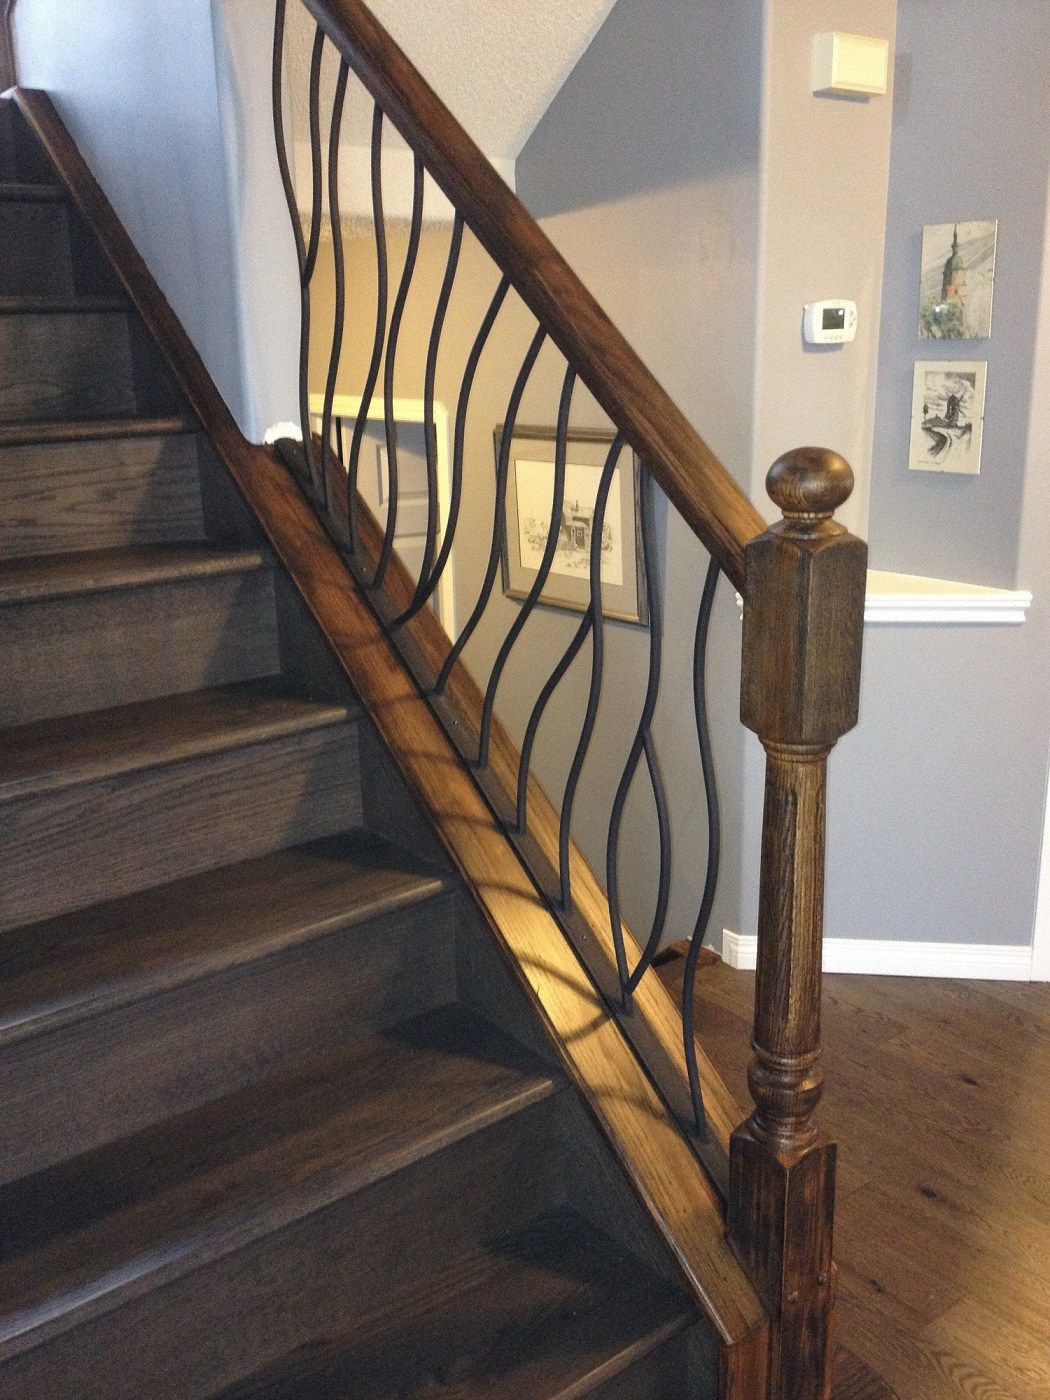 decorative wrought iron indoor stair railings buy.htm bent railing with distressed wood finish interior railings  railing with distressed wood finish